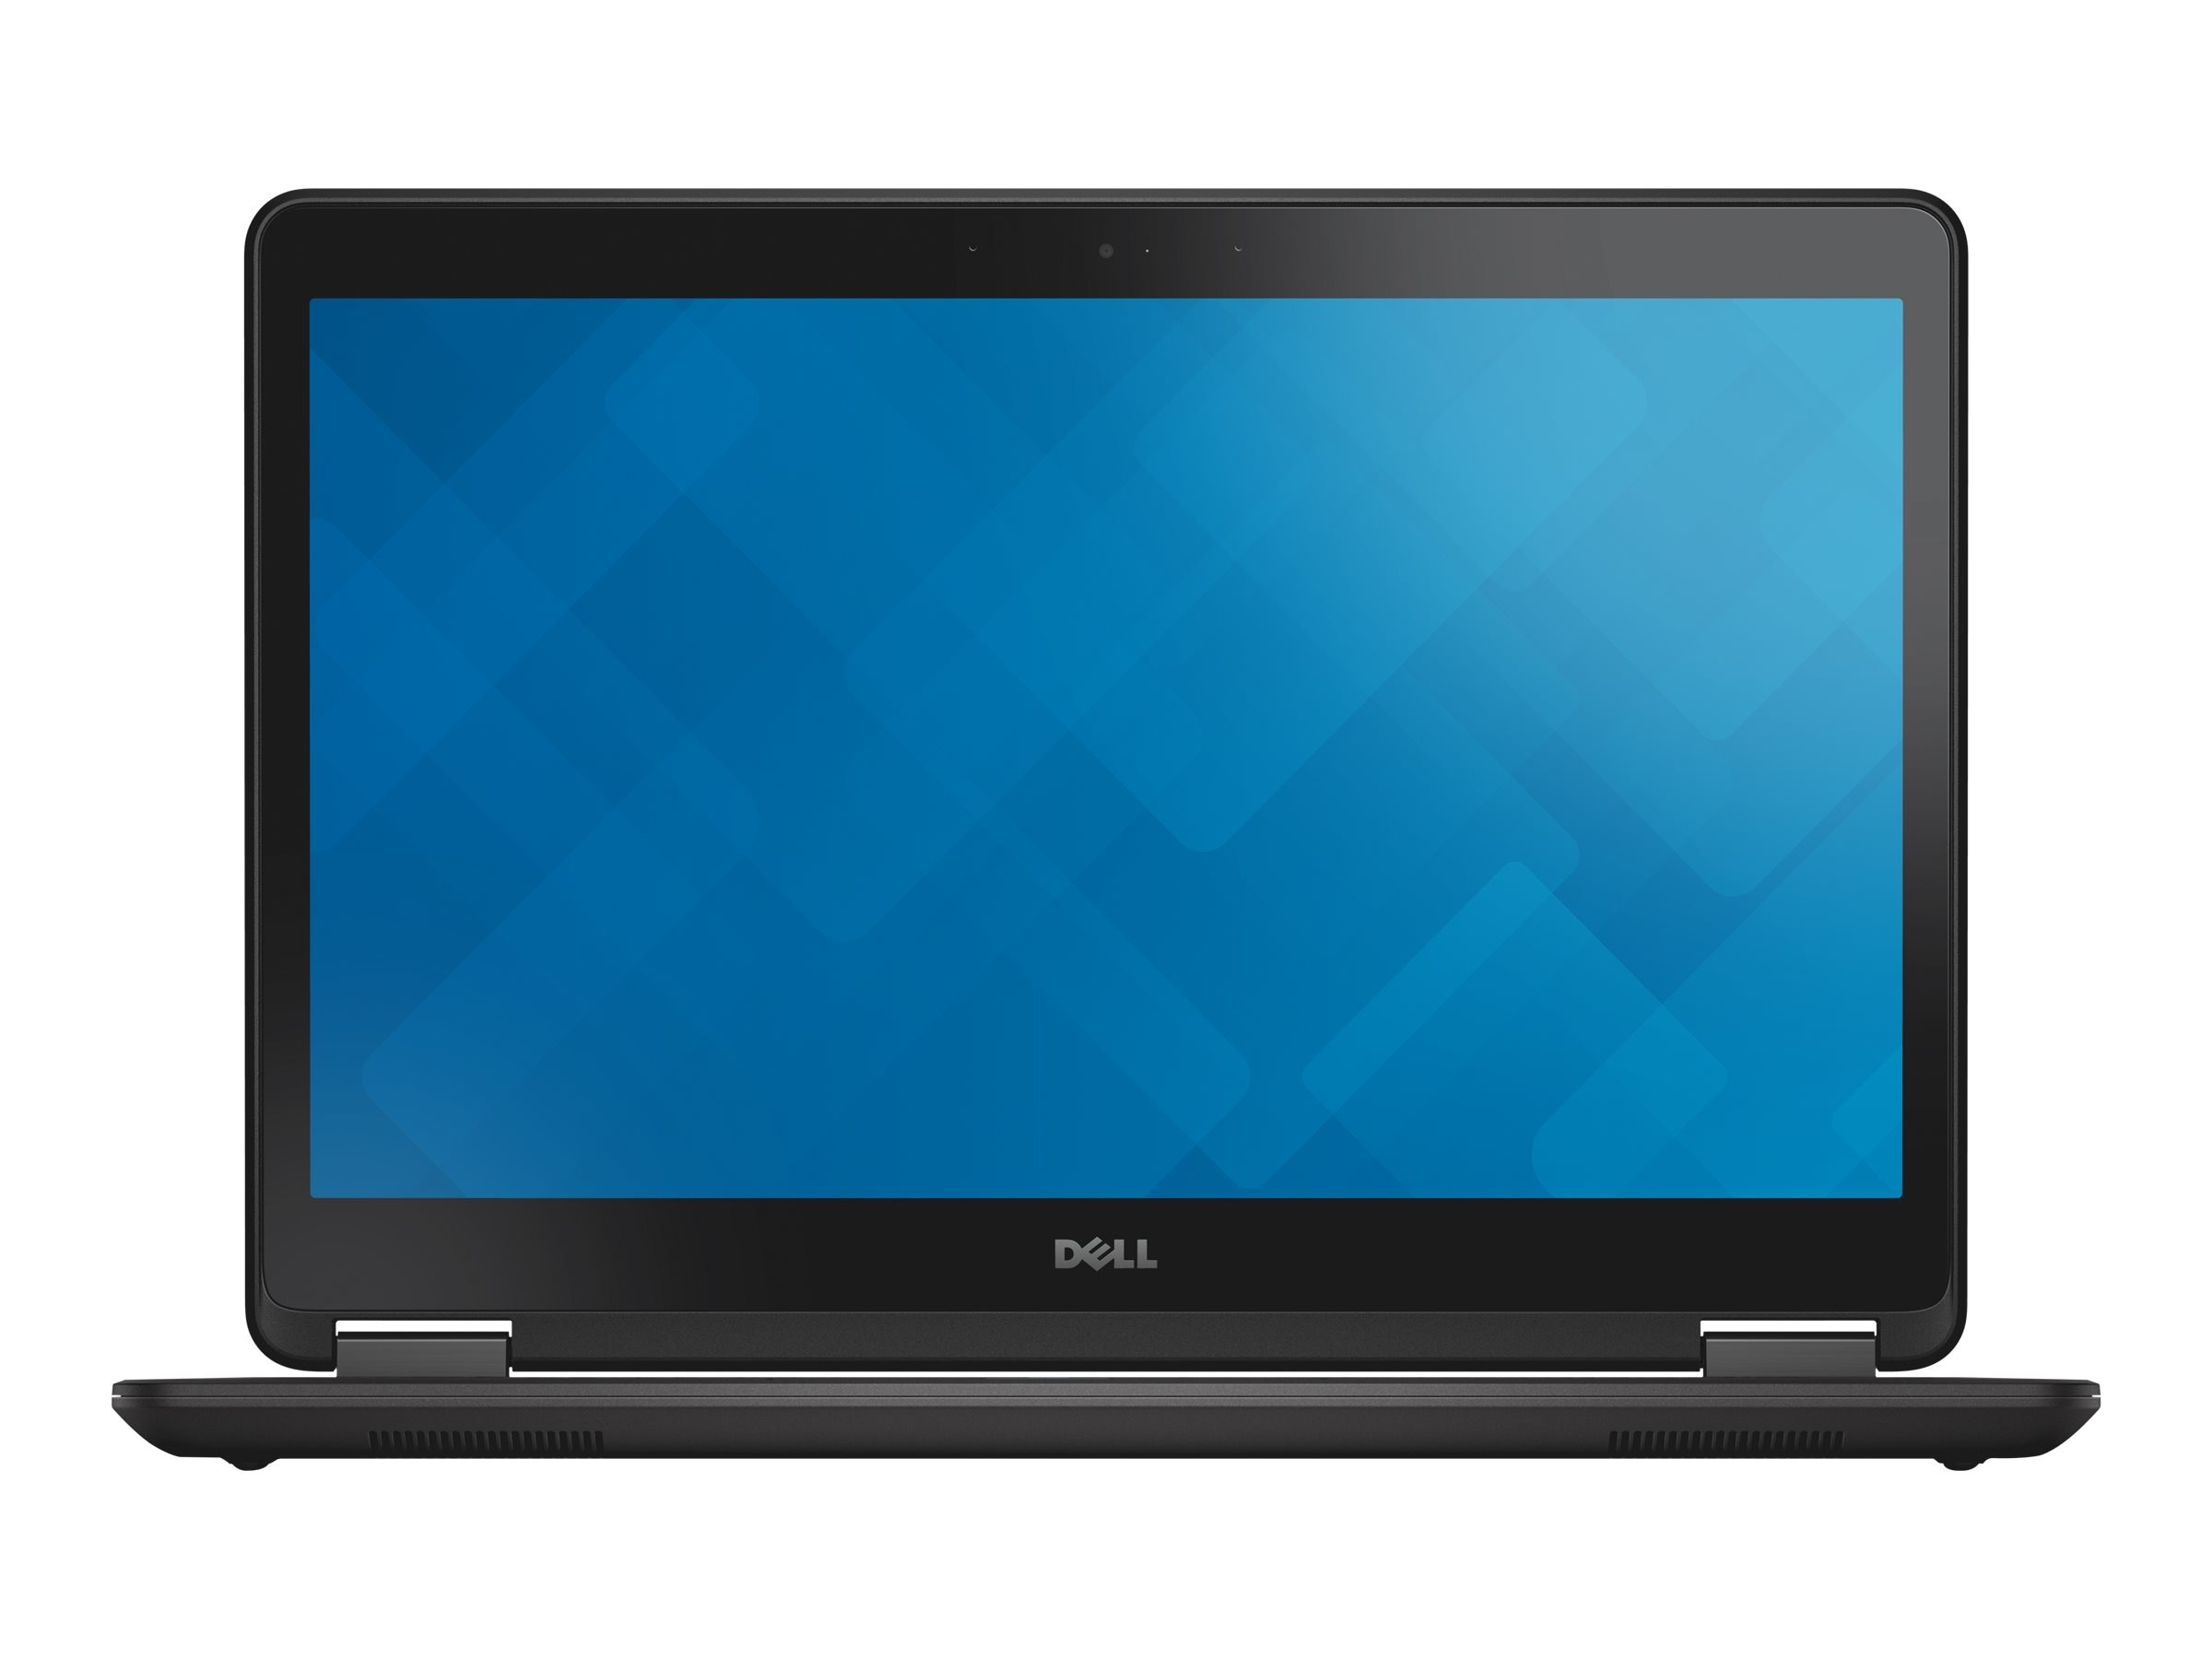 Dell Latitude Core i5-5200U 4GB 256GB 14, NHMR9